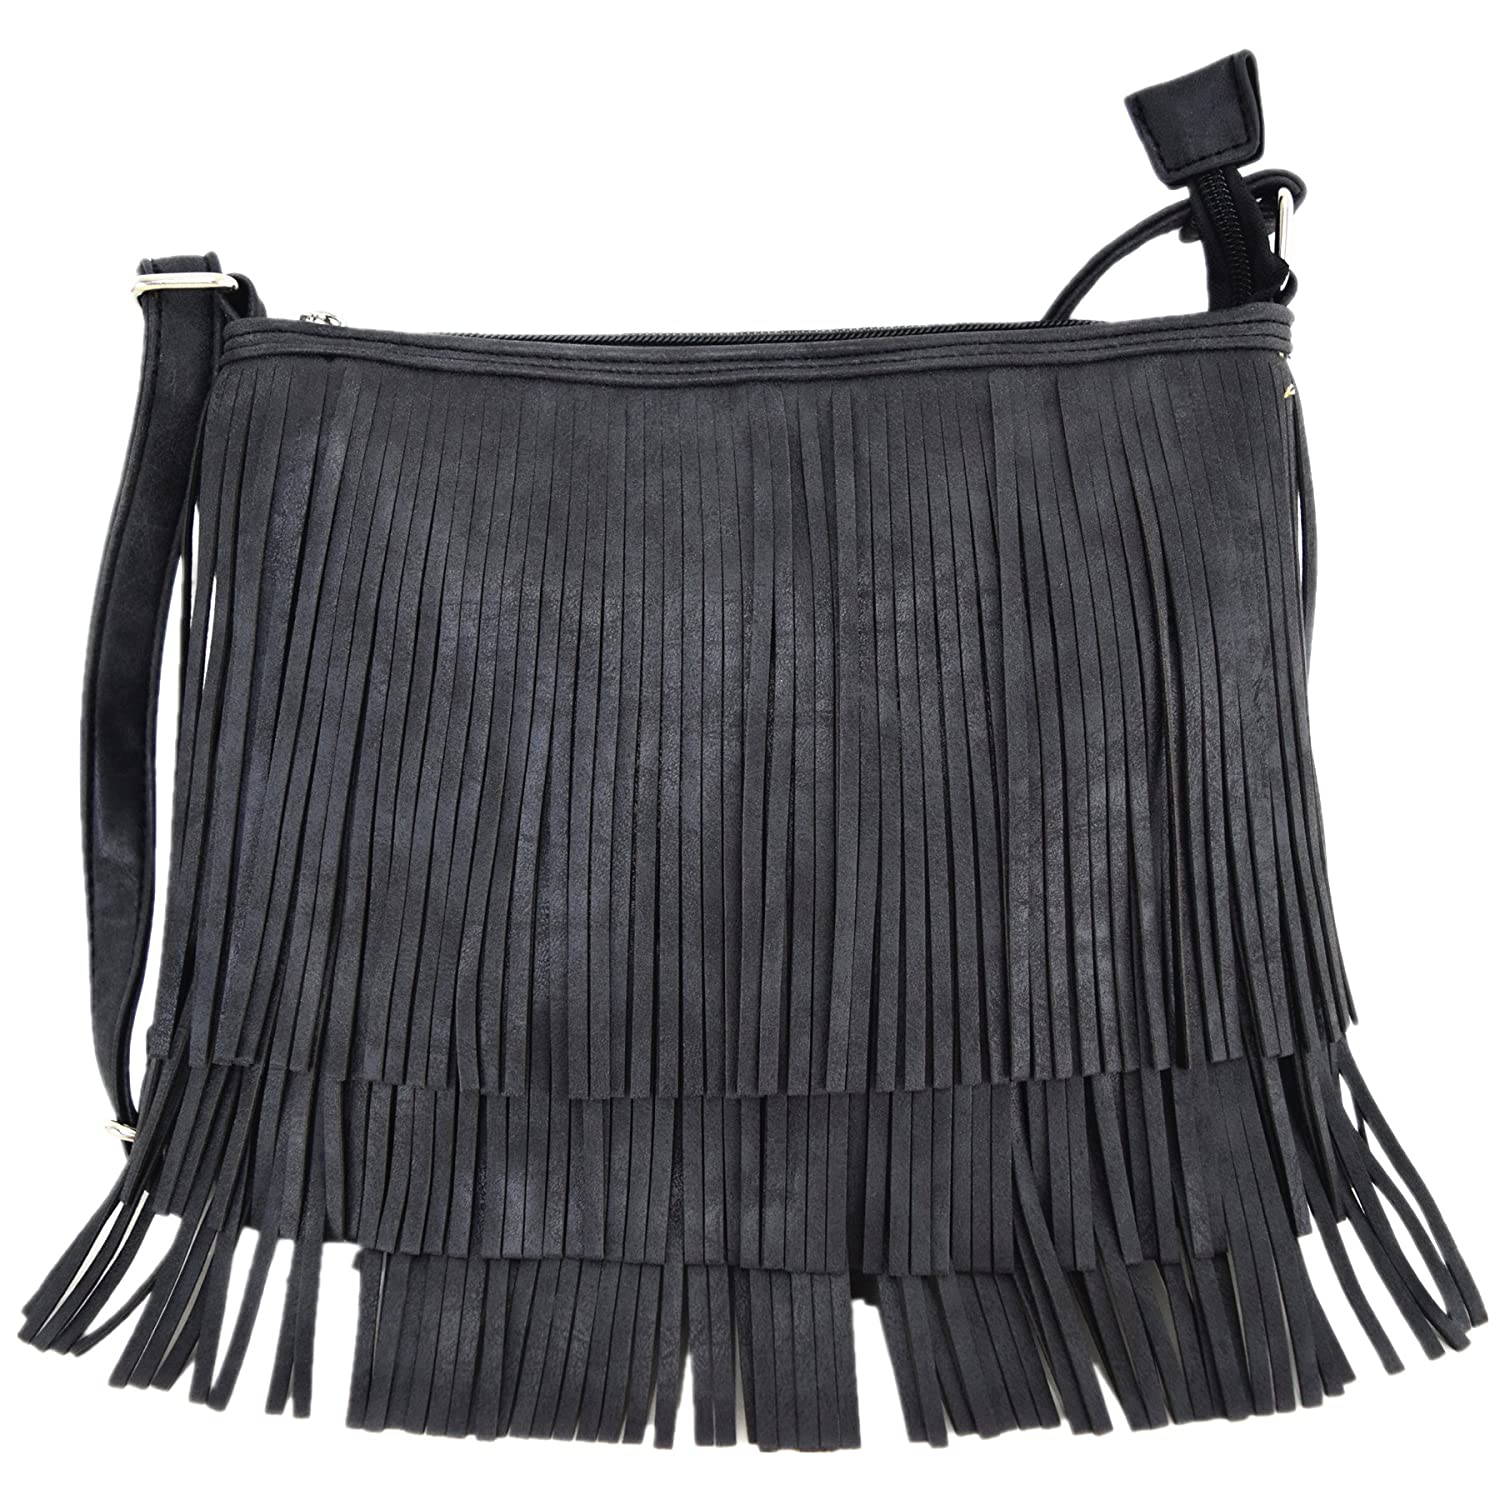 Western Cowgirl Style Fringe Cross Body Handbags Concealed Carry Purse  Country Women Single Shoulder Bags (Black)  Handbags  Amazon.com b2b15b2c74fa2